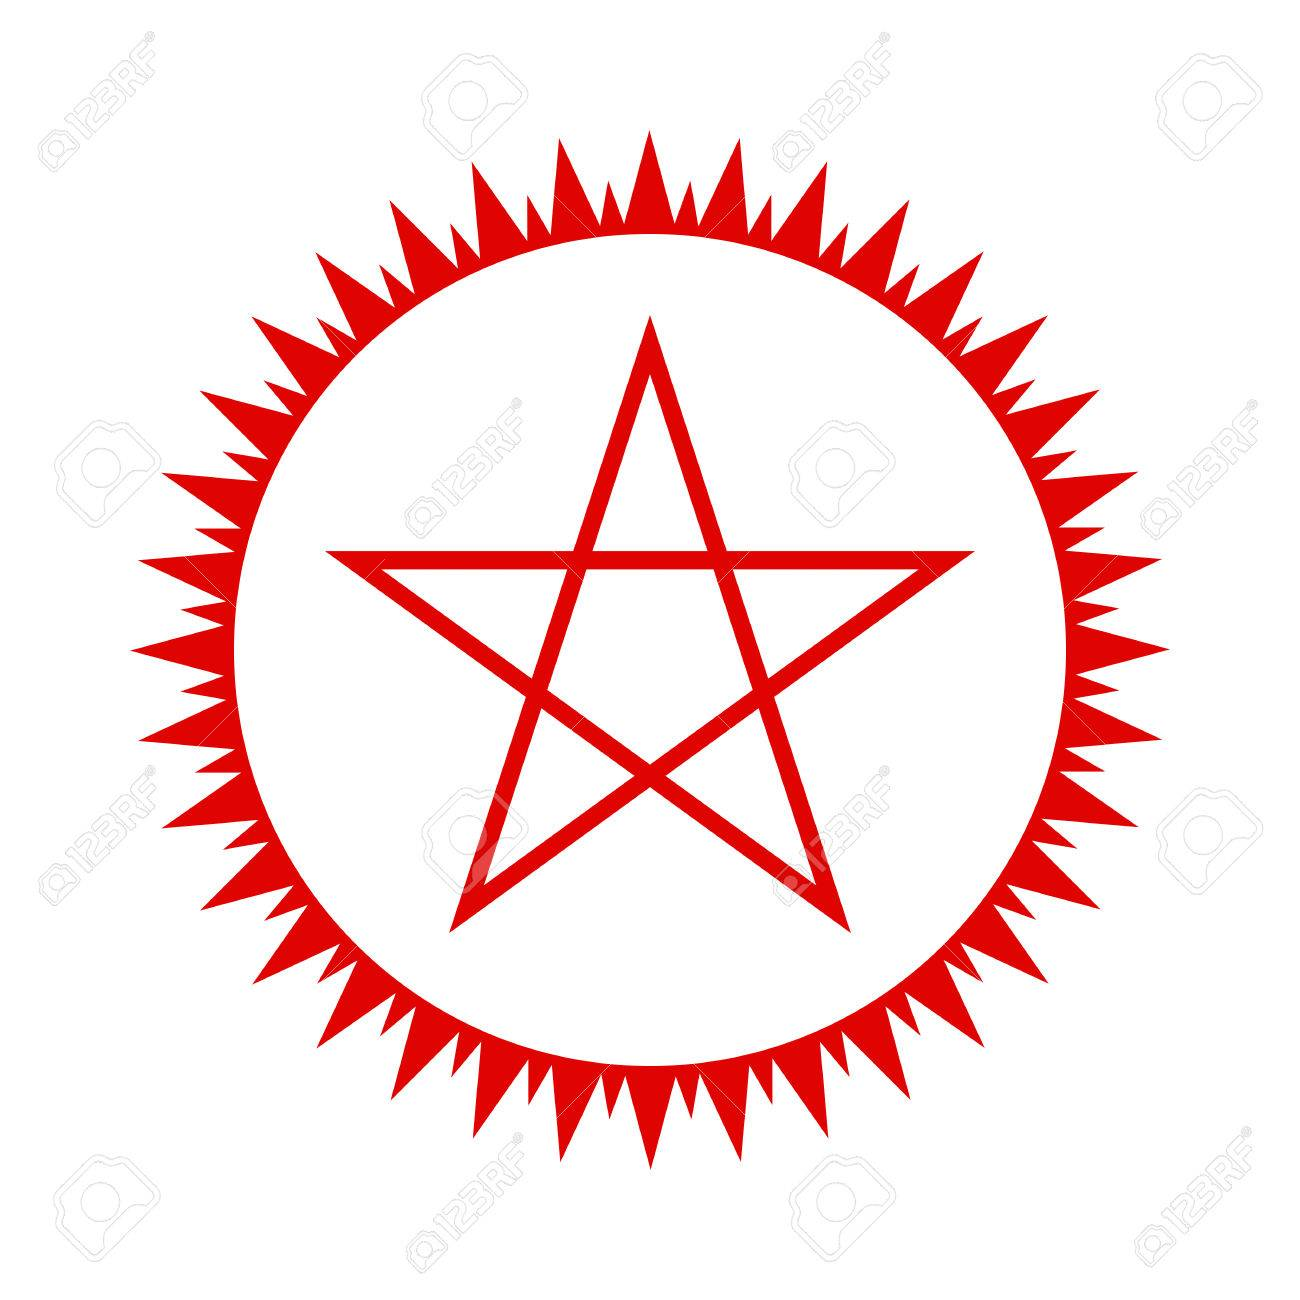 a3dff1e0e8010 Pentagram icon. Red five-pointed star in the circle of fire. Vector  illustration